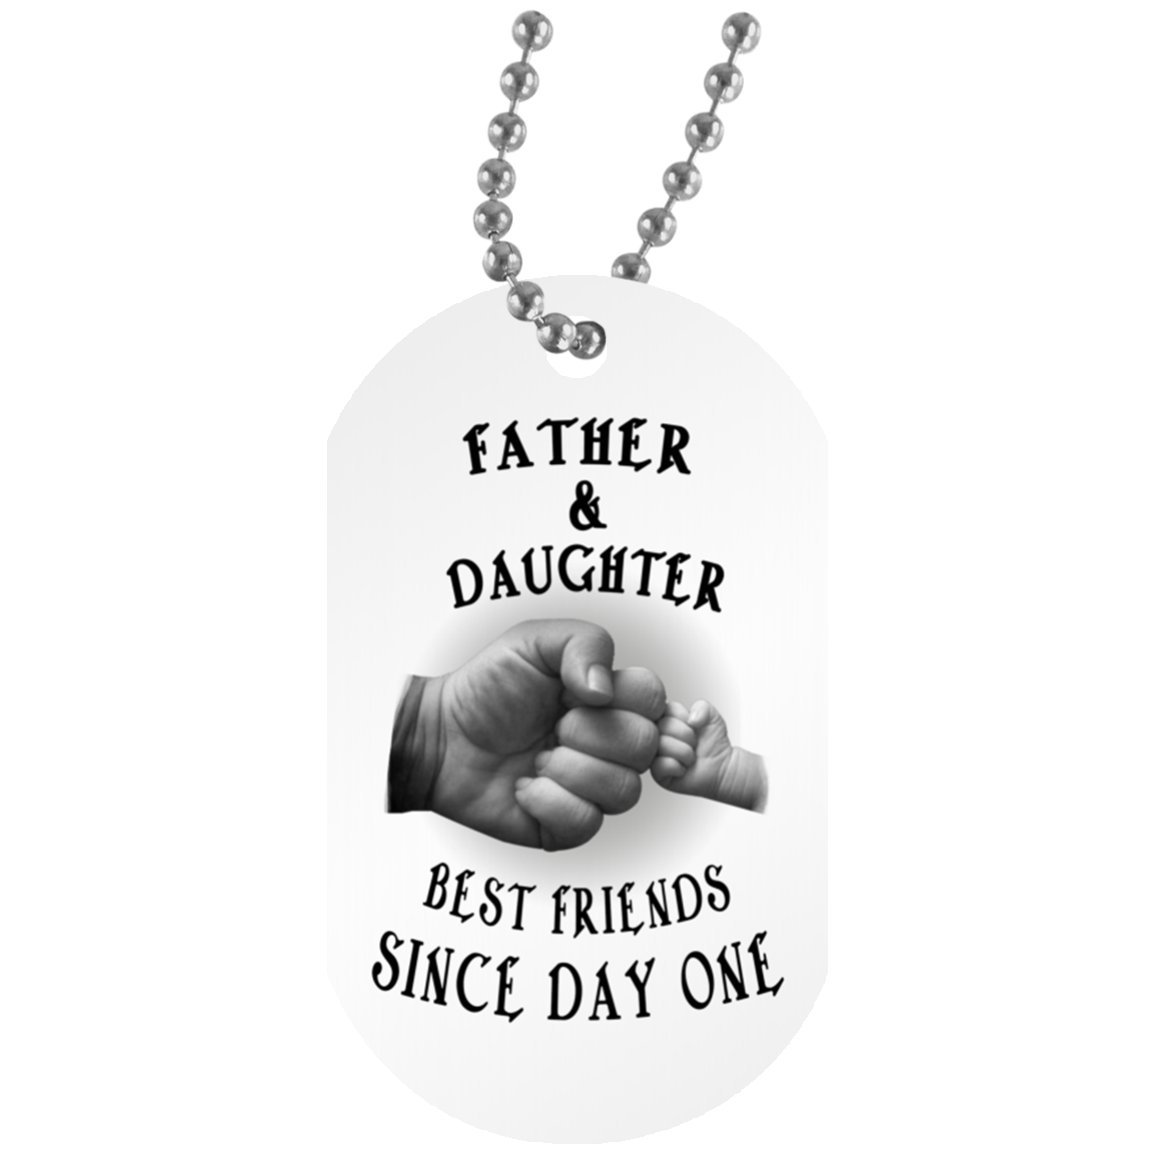 eConvenience Store Daughter Dog Tag From Dad - Motivational Gift for Teen Girls - Unique Birthday Gift Military Inspired Aluminum Dog Tag 30 Inch CustomCat